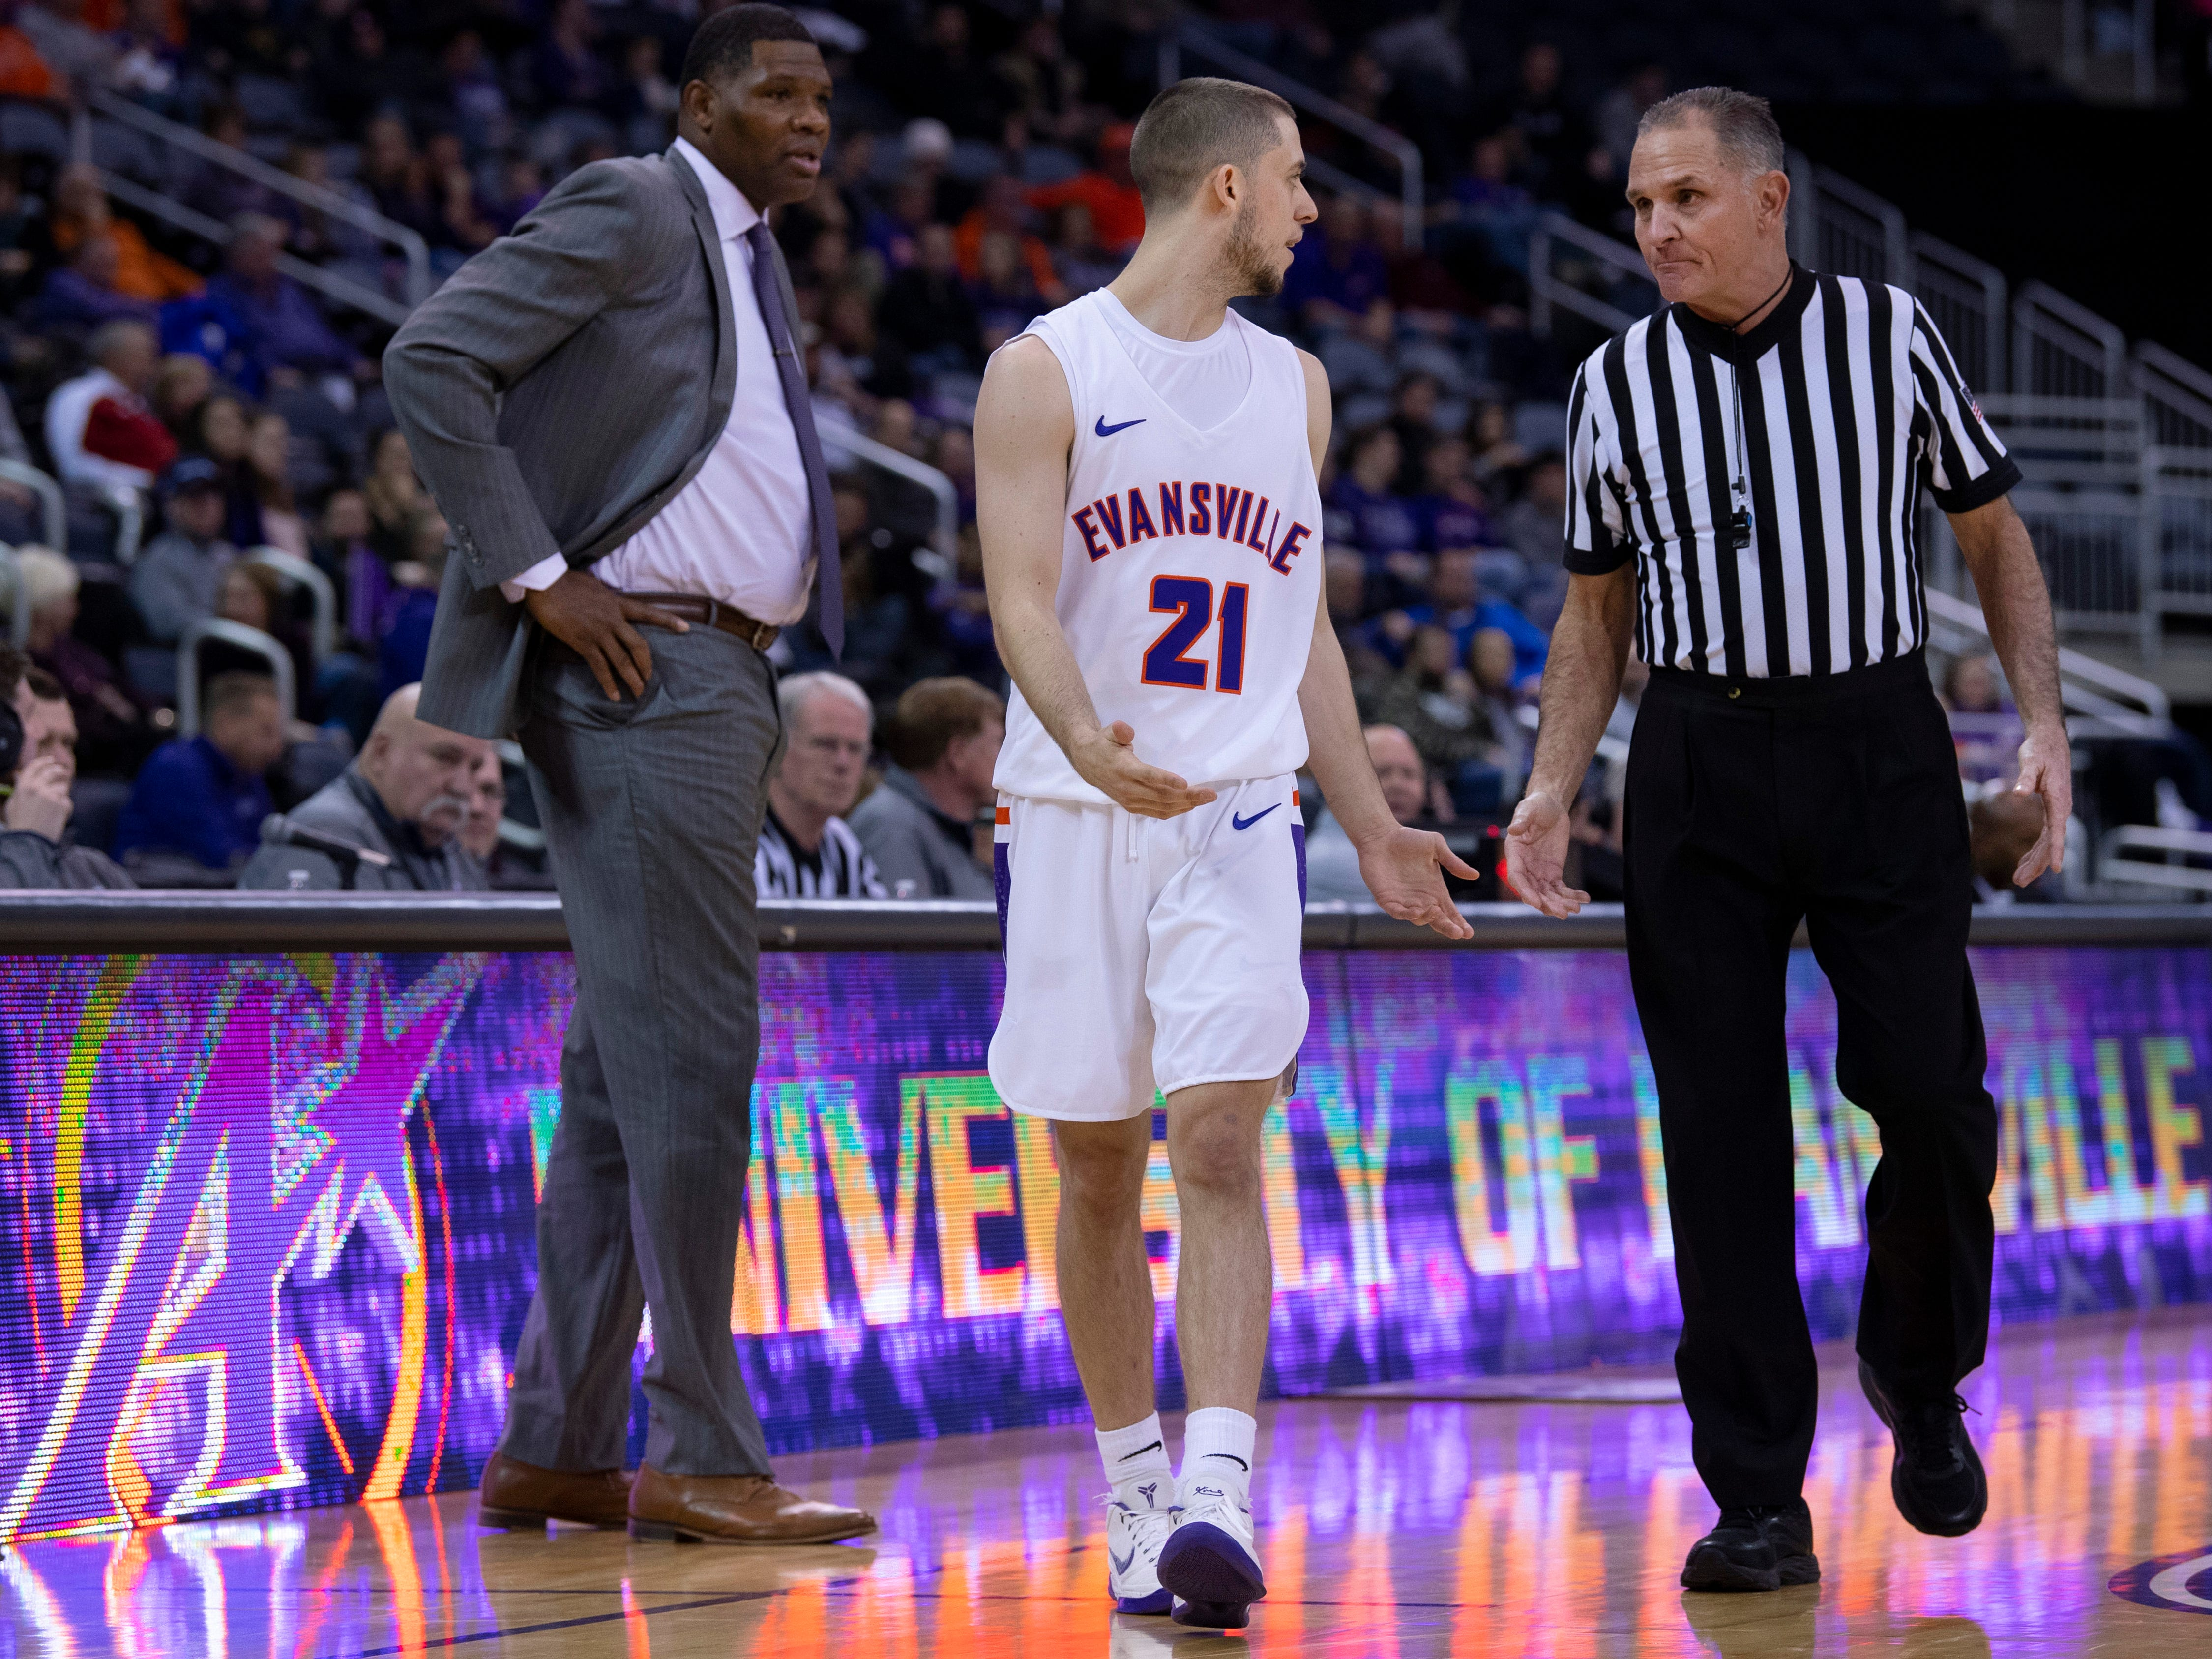 Evansville's Shea Feehan (21) discusses being handed a flagrant one foul against Bradley during their game at the Ford Center Wednesday night.